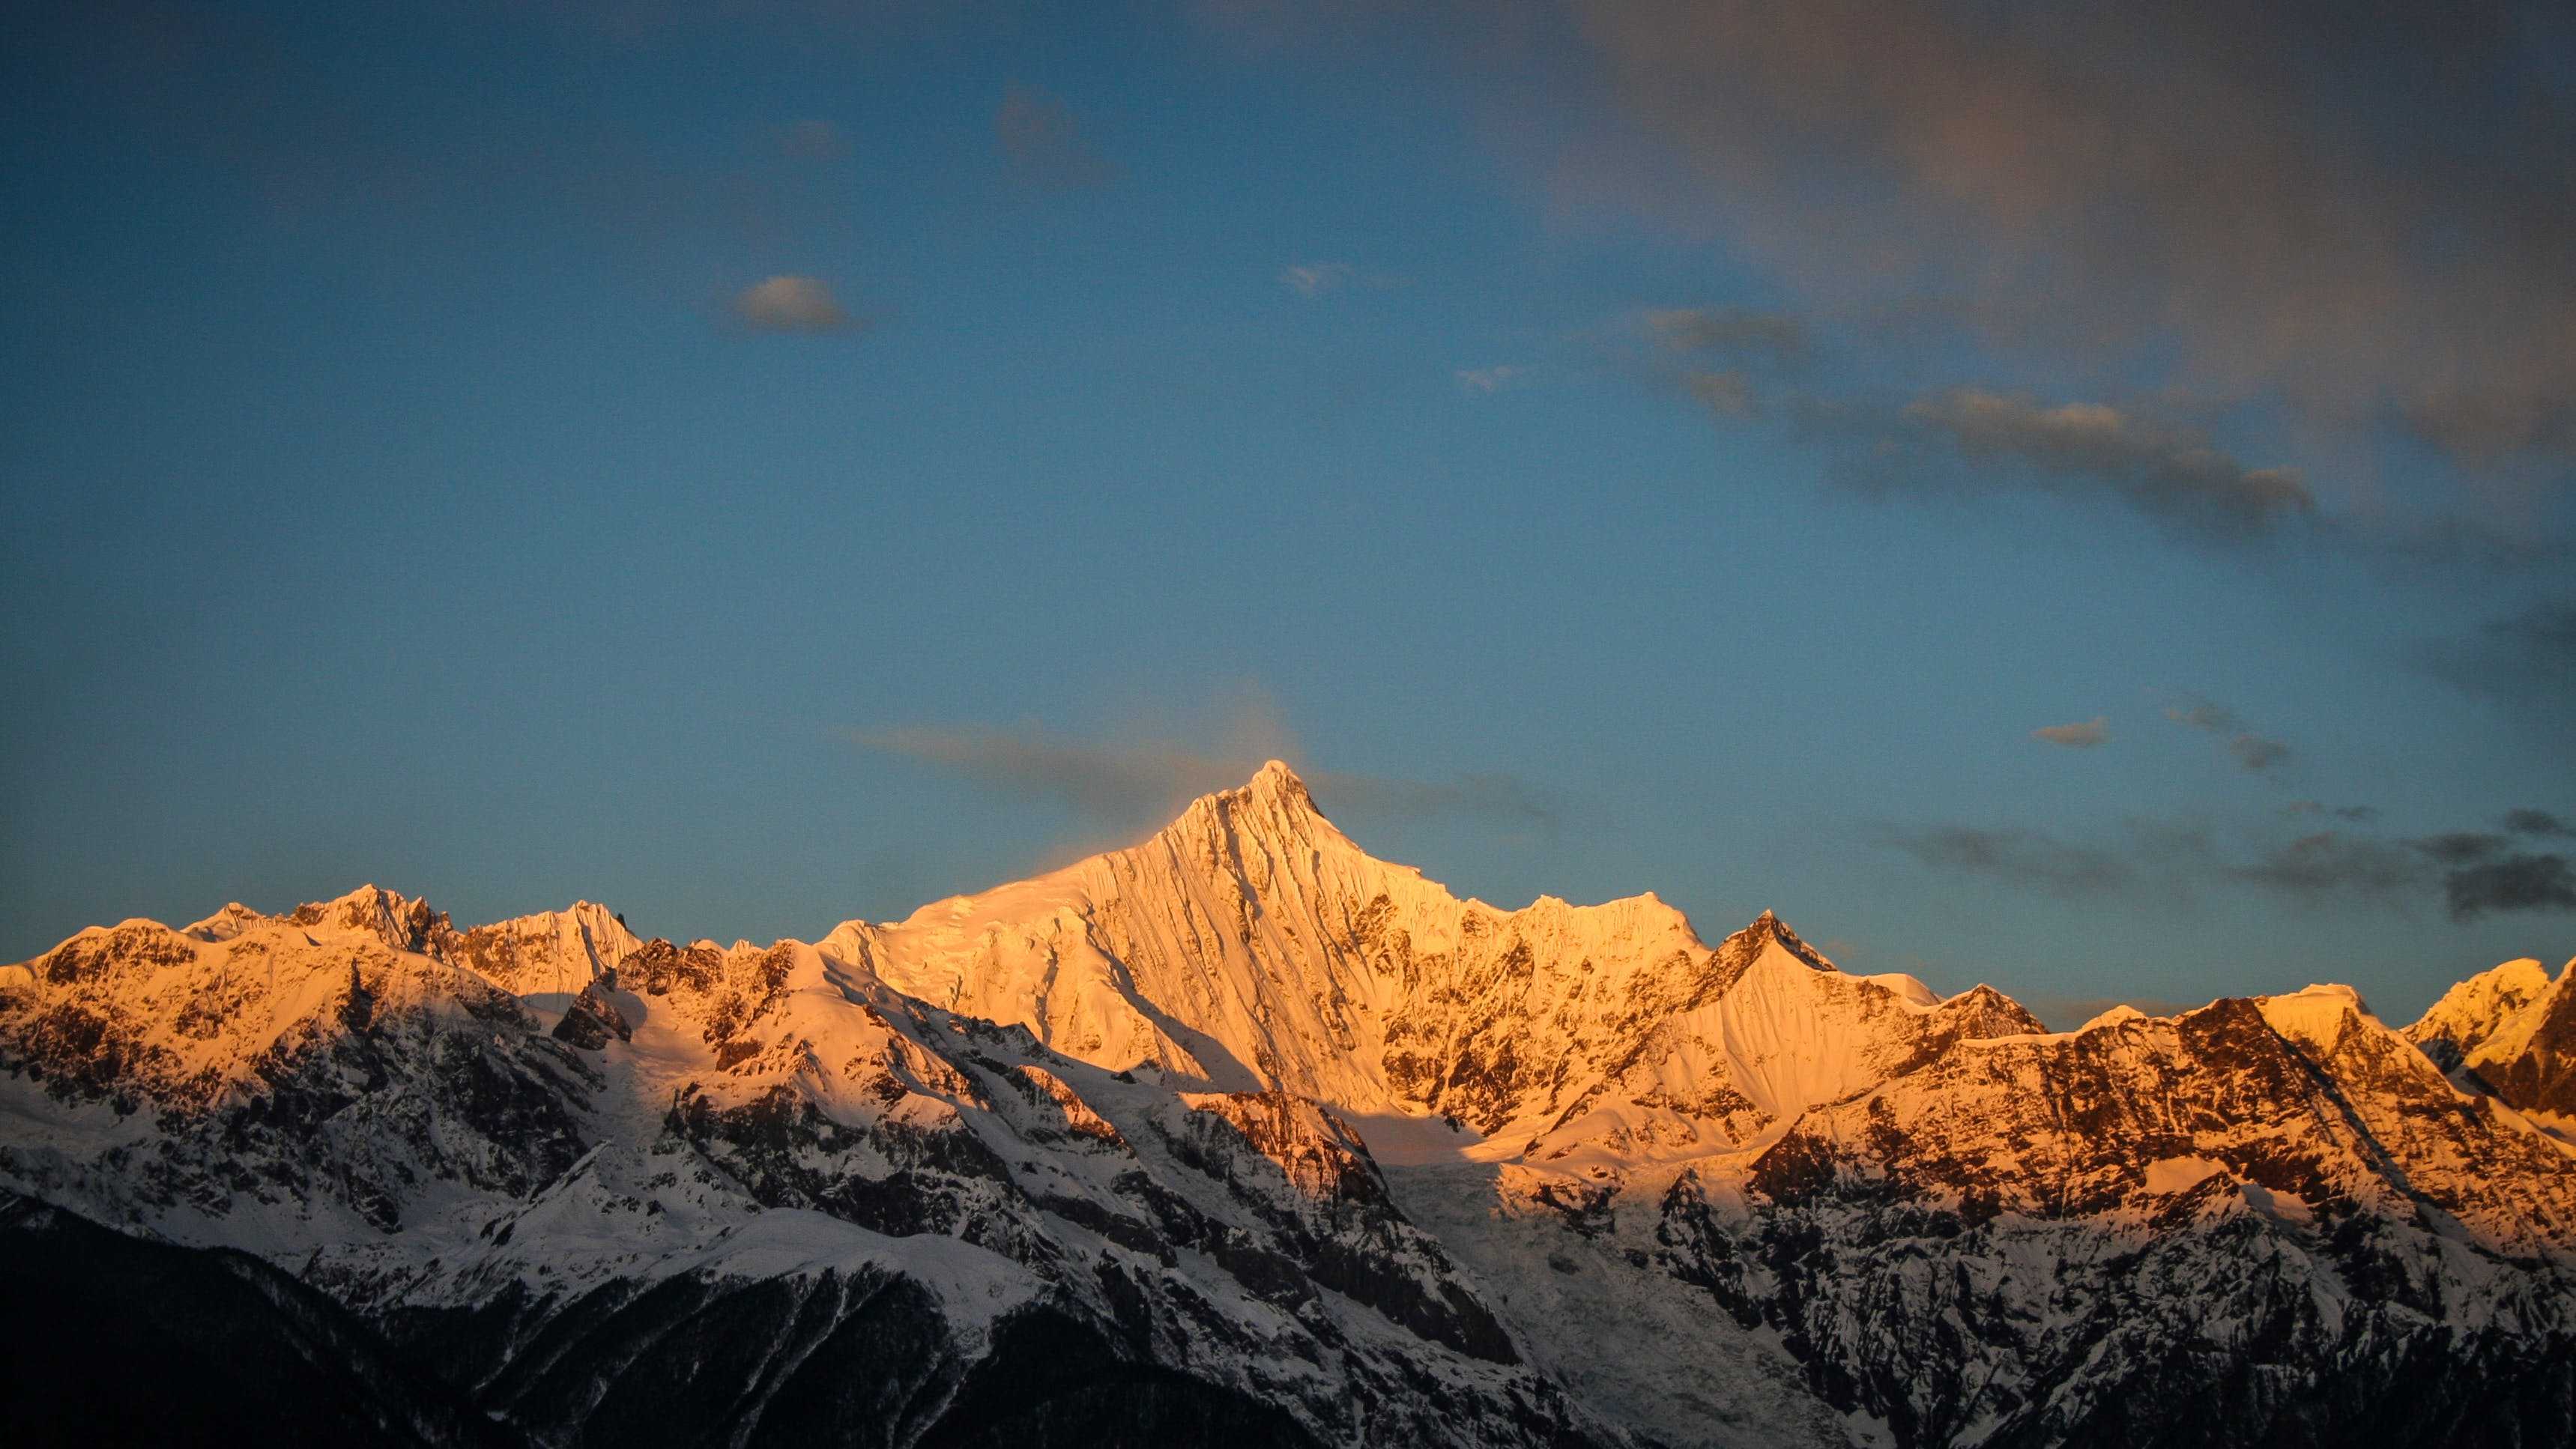 Snowy Mountain during Golden Hour